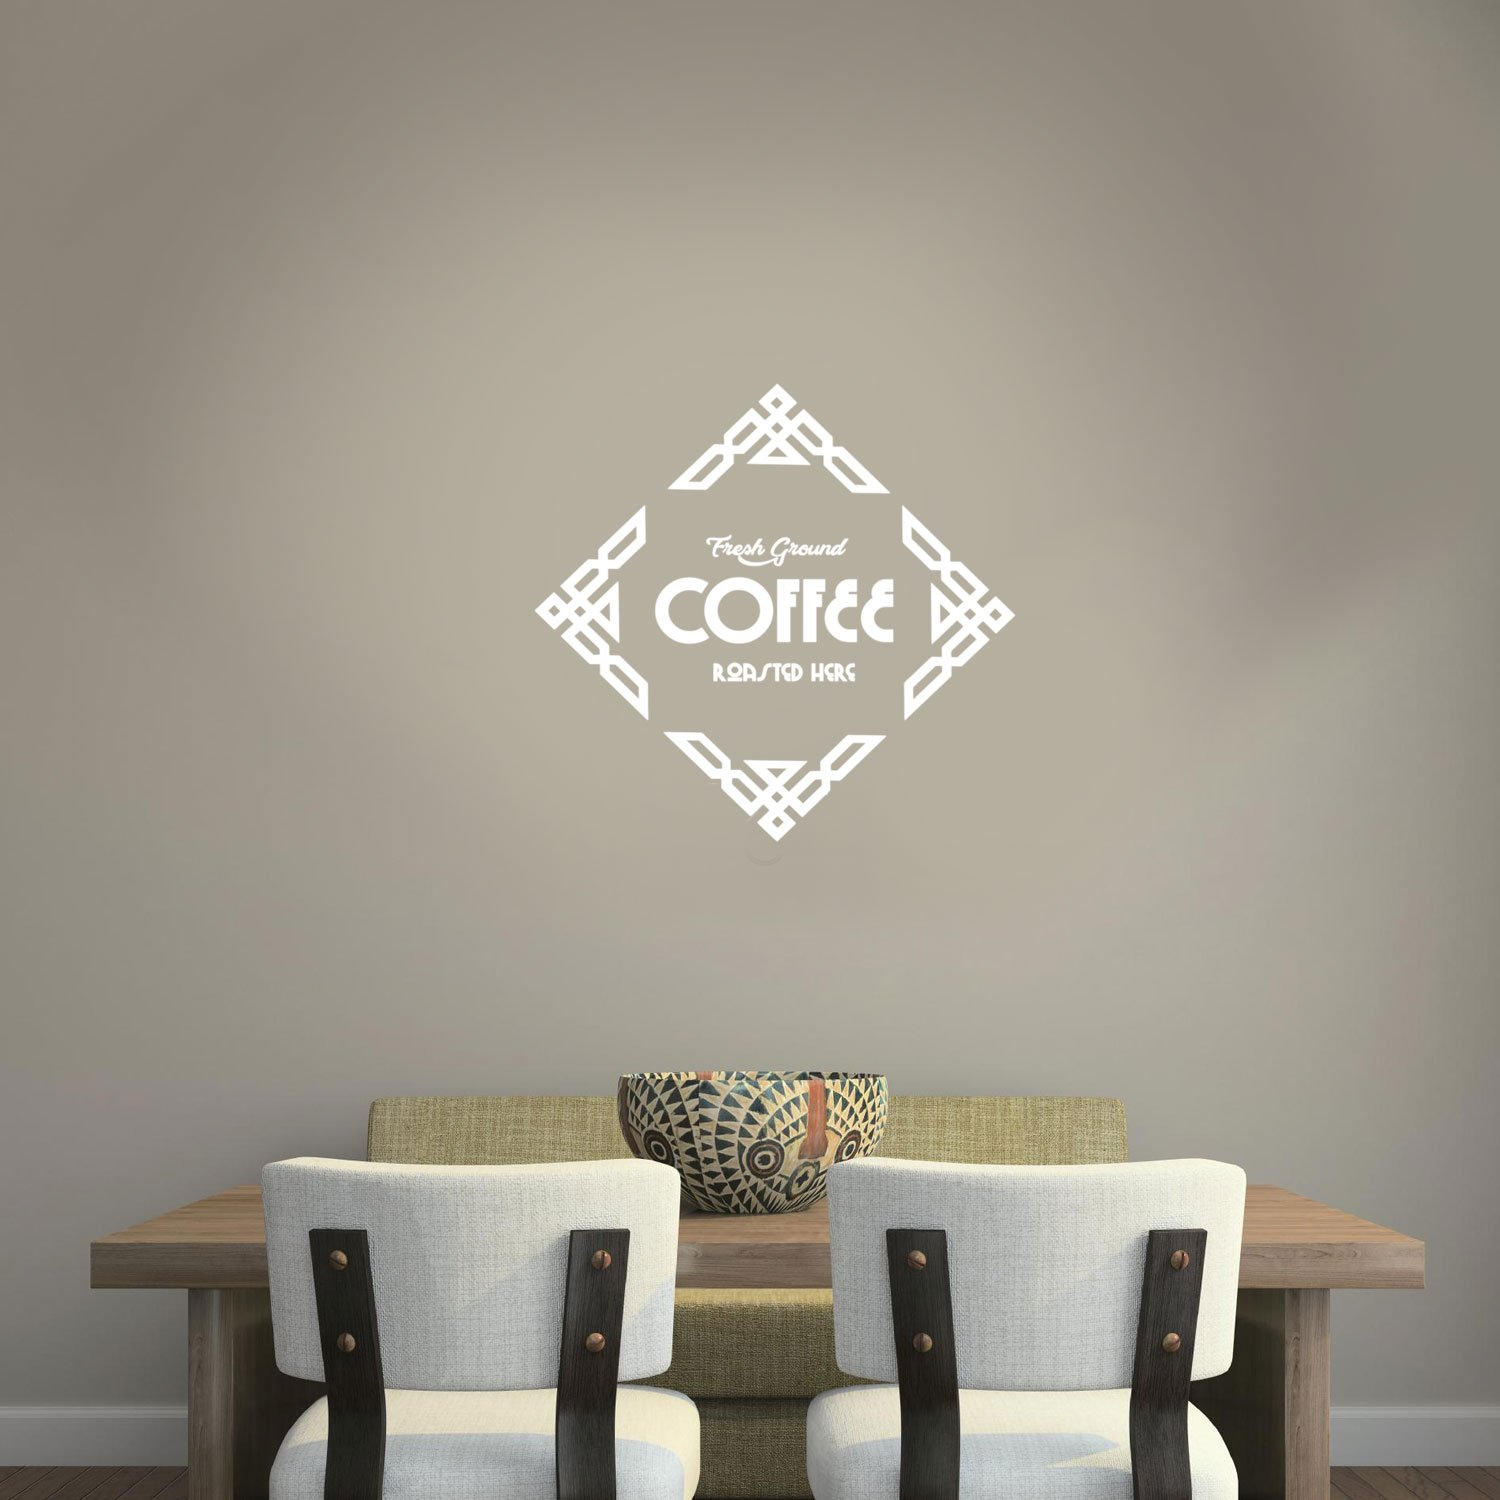 Amazon.com: Vinilo de pulso para decoración de pared de café ...